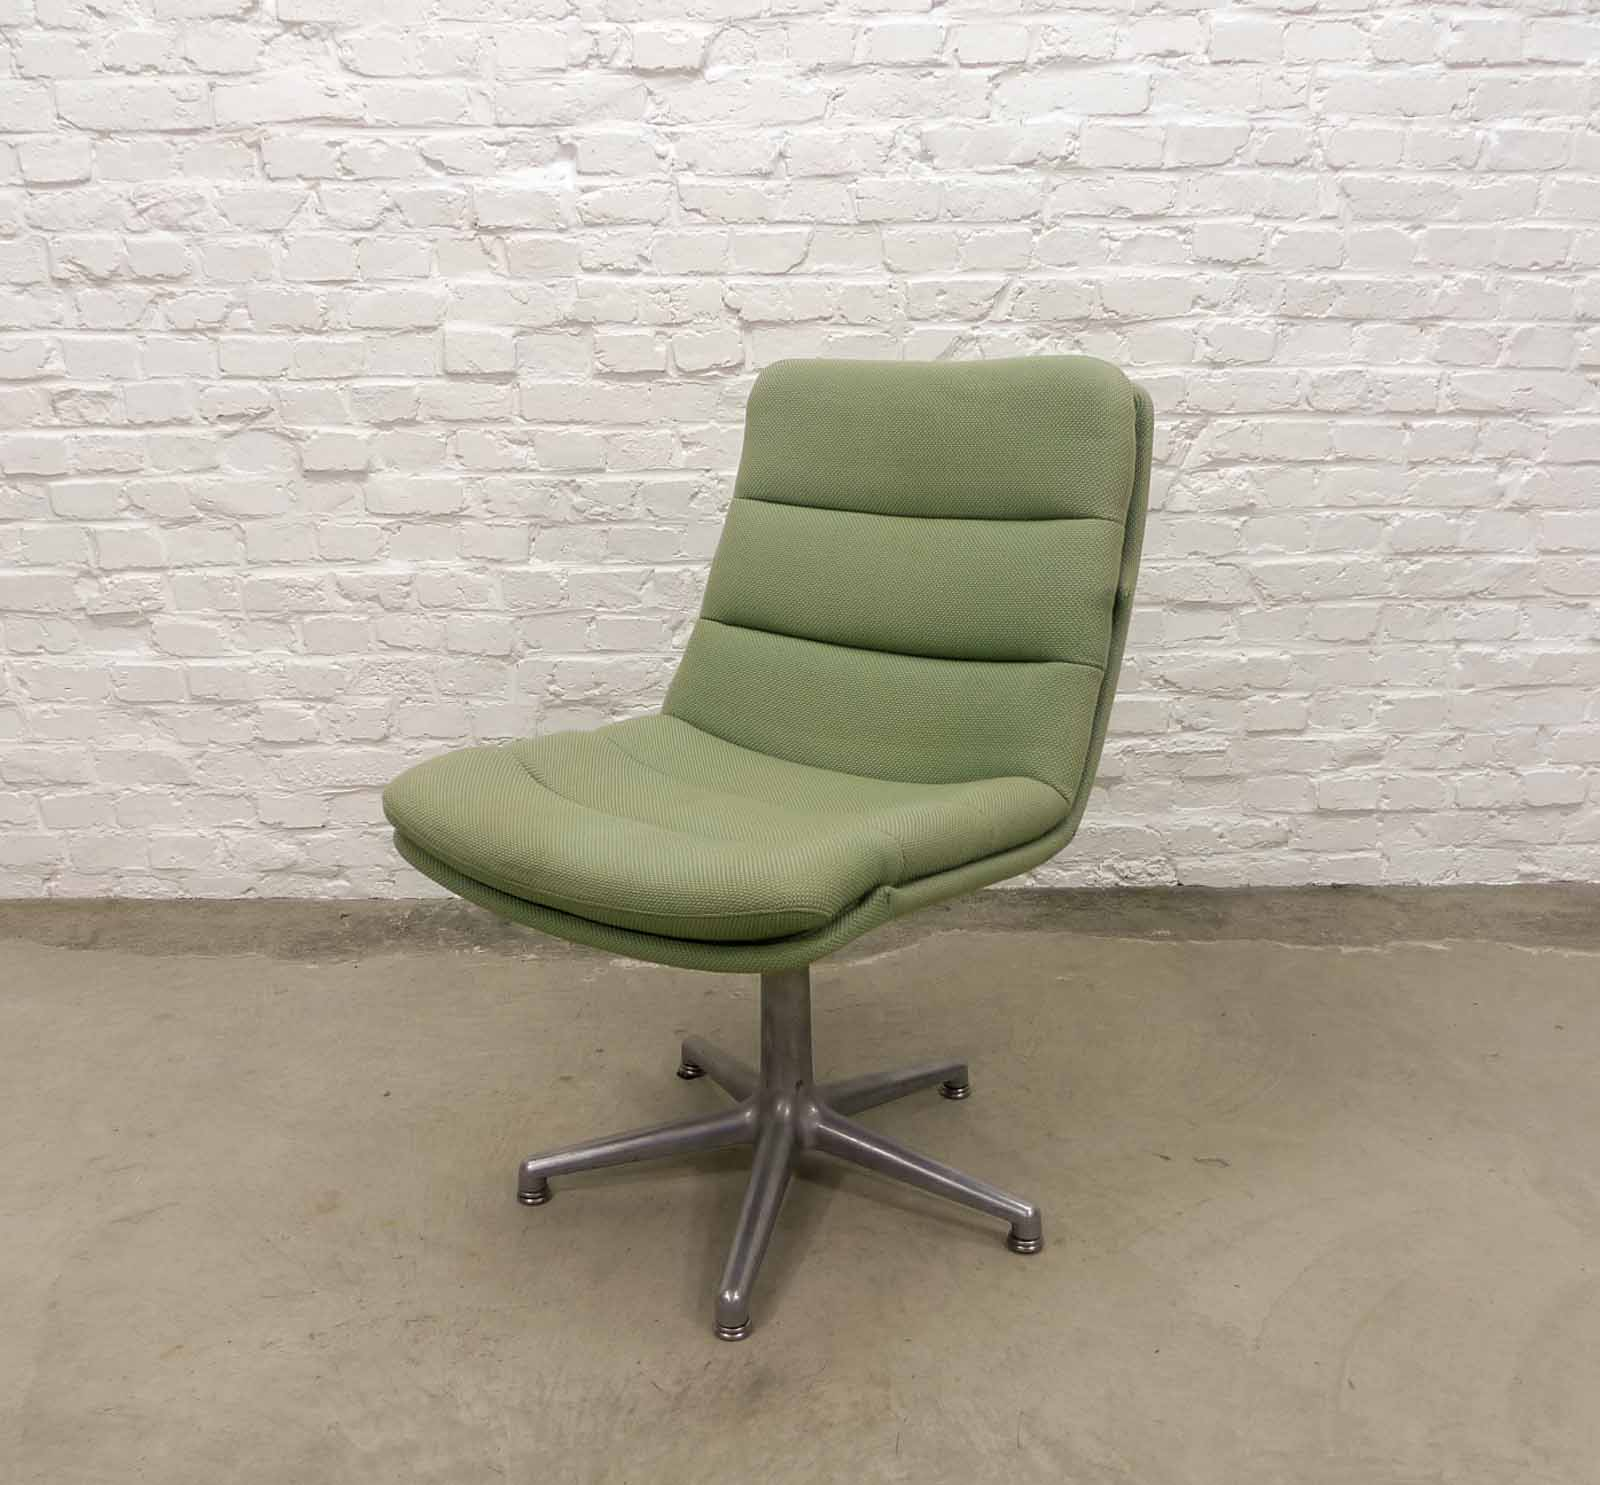 Mid Century Mint Green Desk Chair By Geoffrey Harcourt For Artifort, 1960s